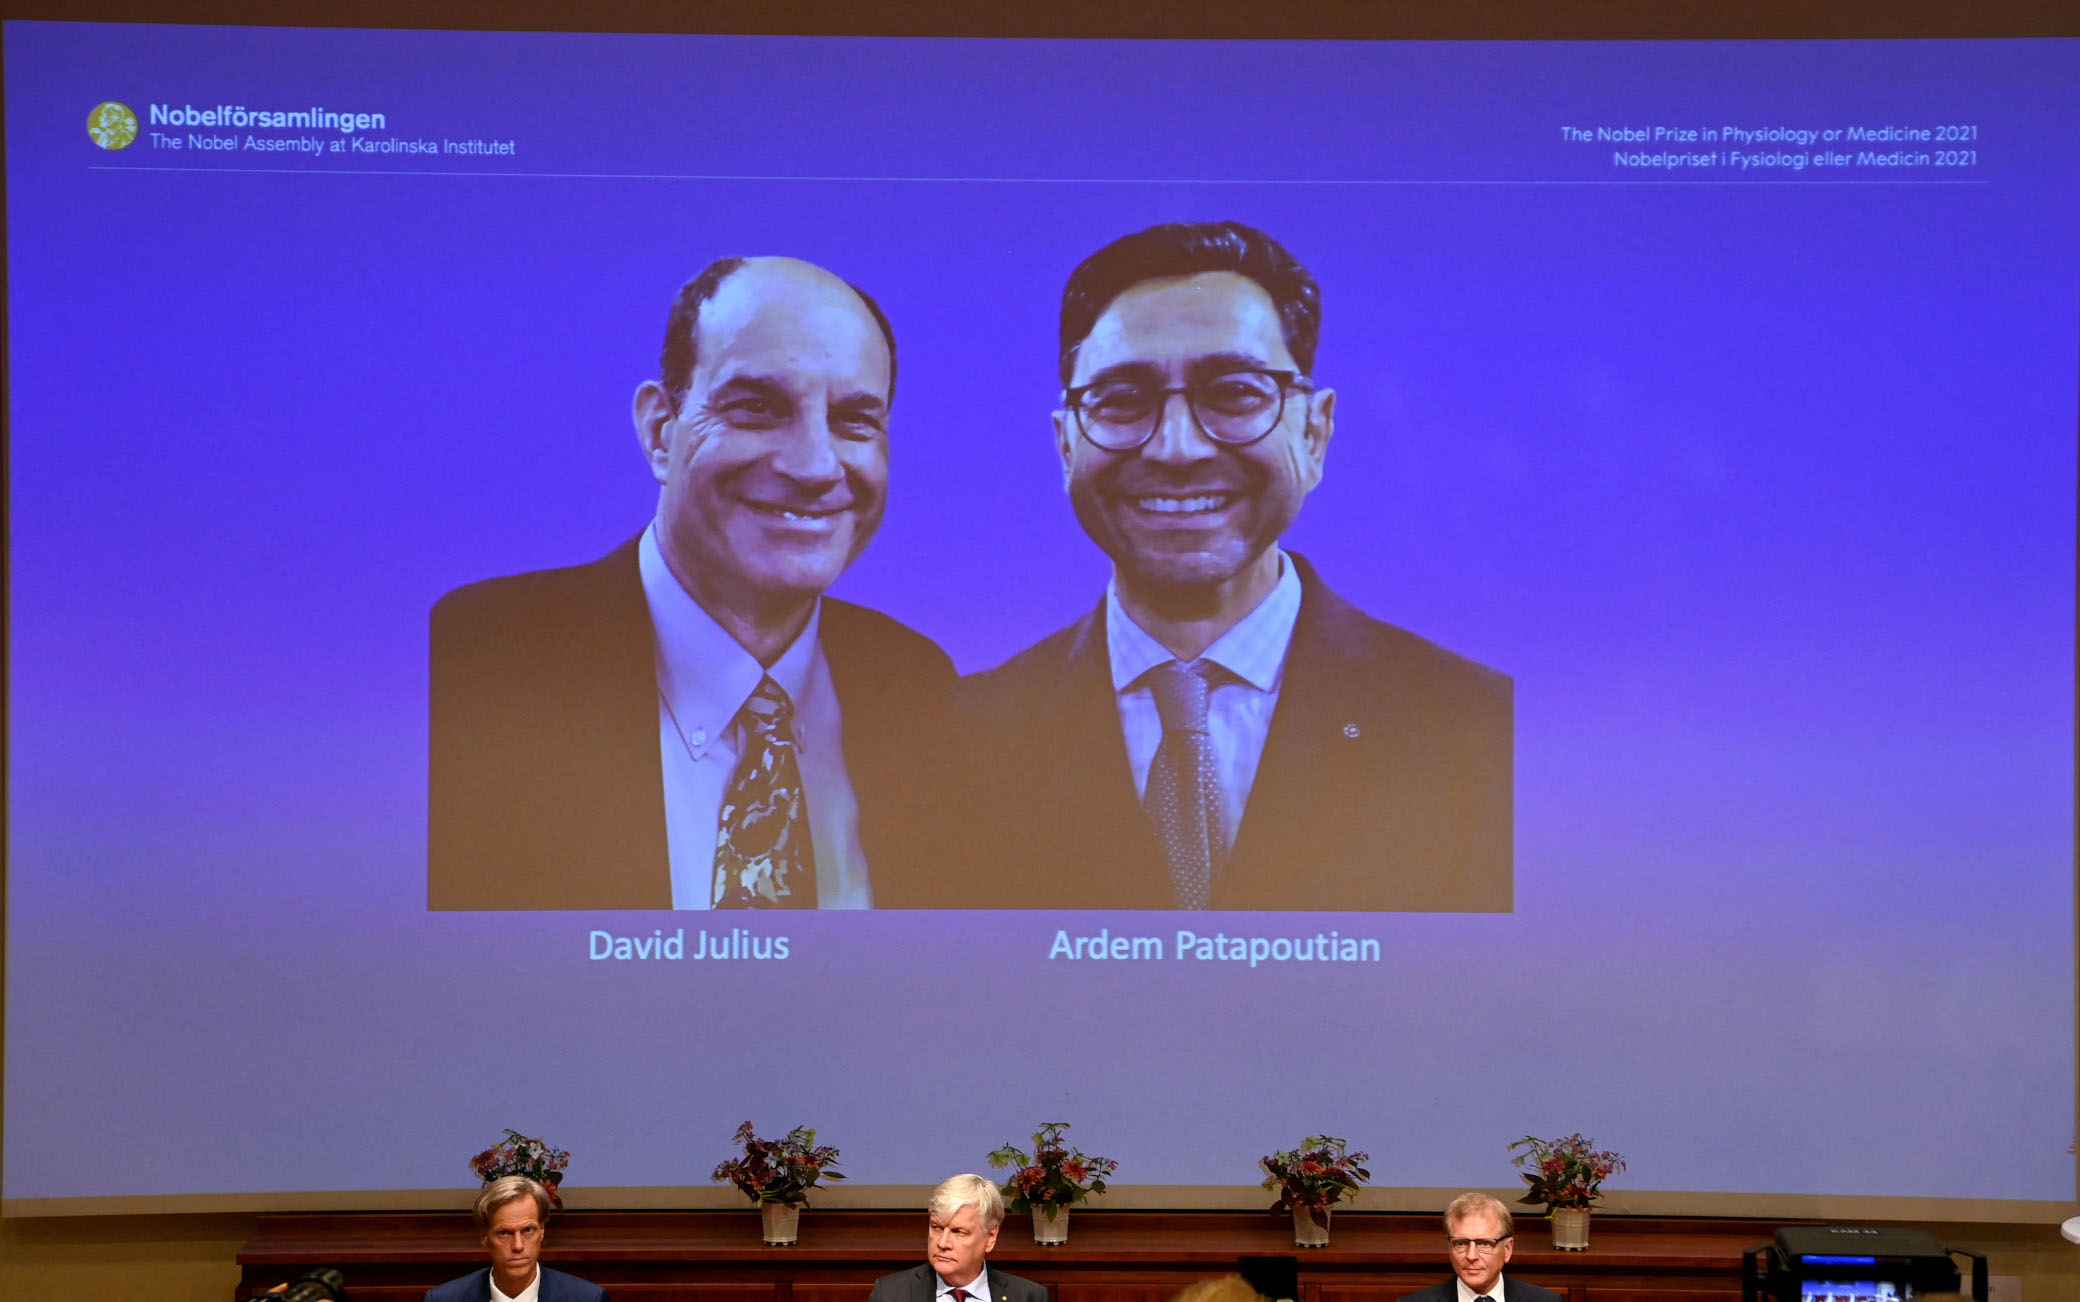 Members of the Nobel Committee sit in front of a screen displaying the winners of the 2021 Nobel Prize in Physiology or Medicine David Julius (L) and Ardem Patapoutian, during a press conference at the Karolinska Institute in Stockholm, Sweden, on October 4, 2021. - US scientists David Julius and Ardem Patapoutian won the Nobel Medicine Prize for discoveries on receptors for temperature and touch. (Photo by Jonathan NACKSTRAND / AFP) (Photo by JONATHAN NACKSTRAND/AFP via Getty Images)